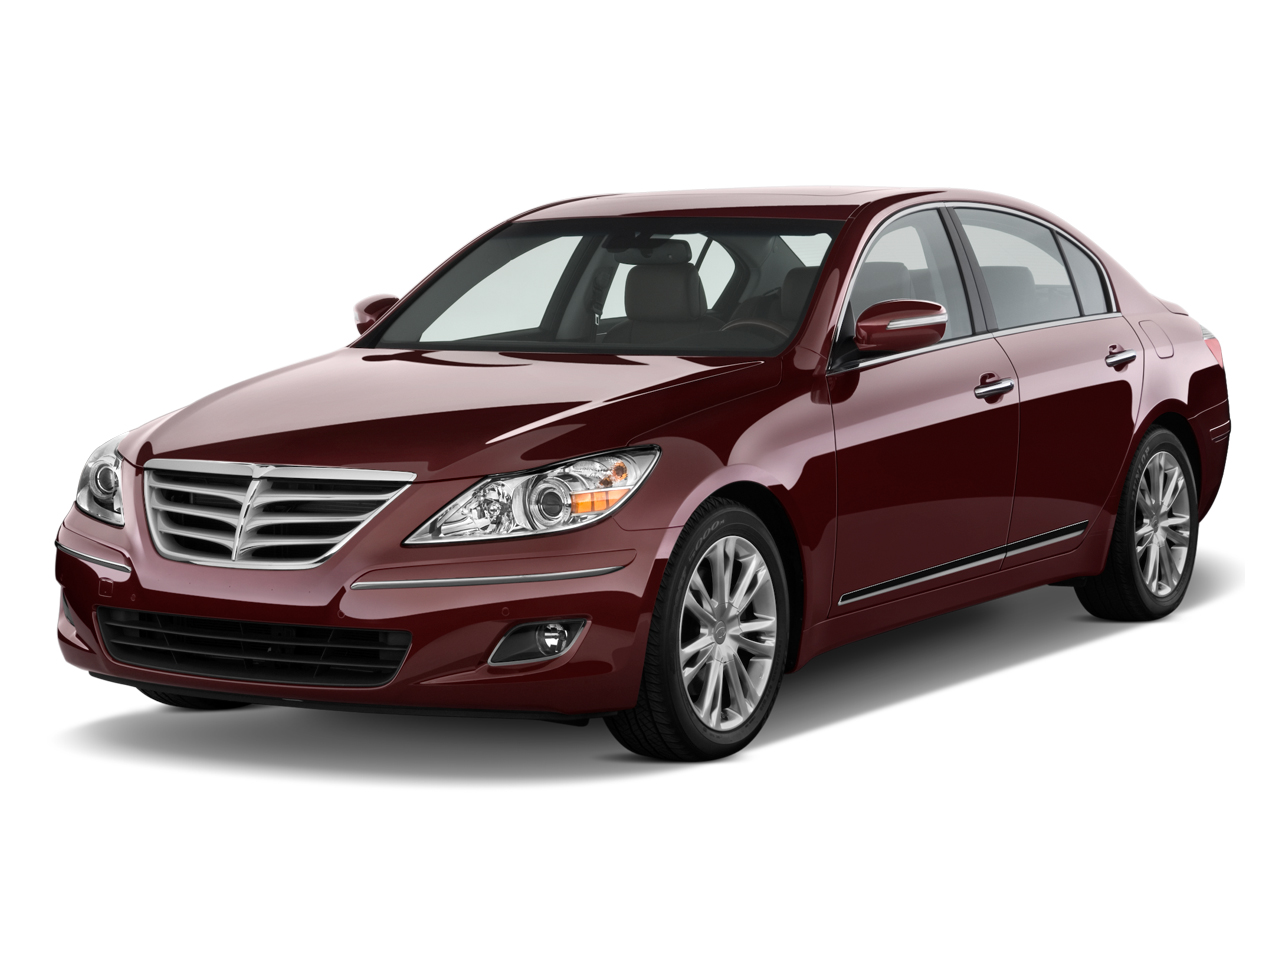 2011 hyundai genesis review ratings specs prices and photos the car con. Cars Review. Best American Auto & Cars Review